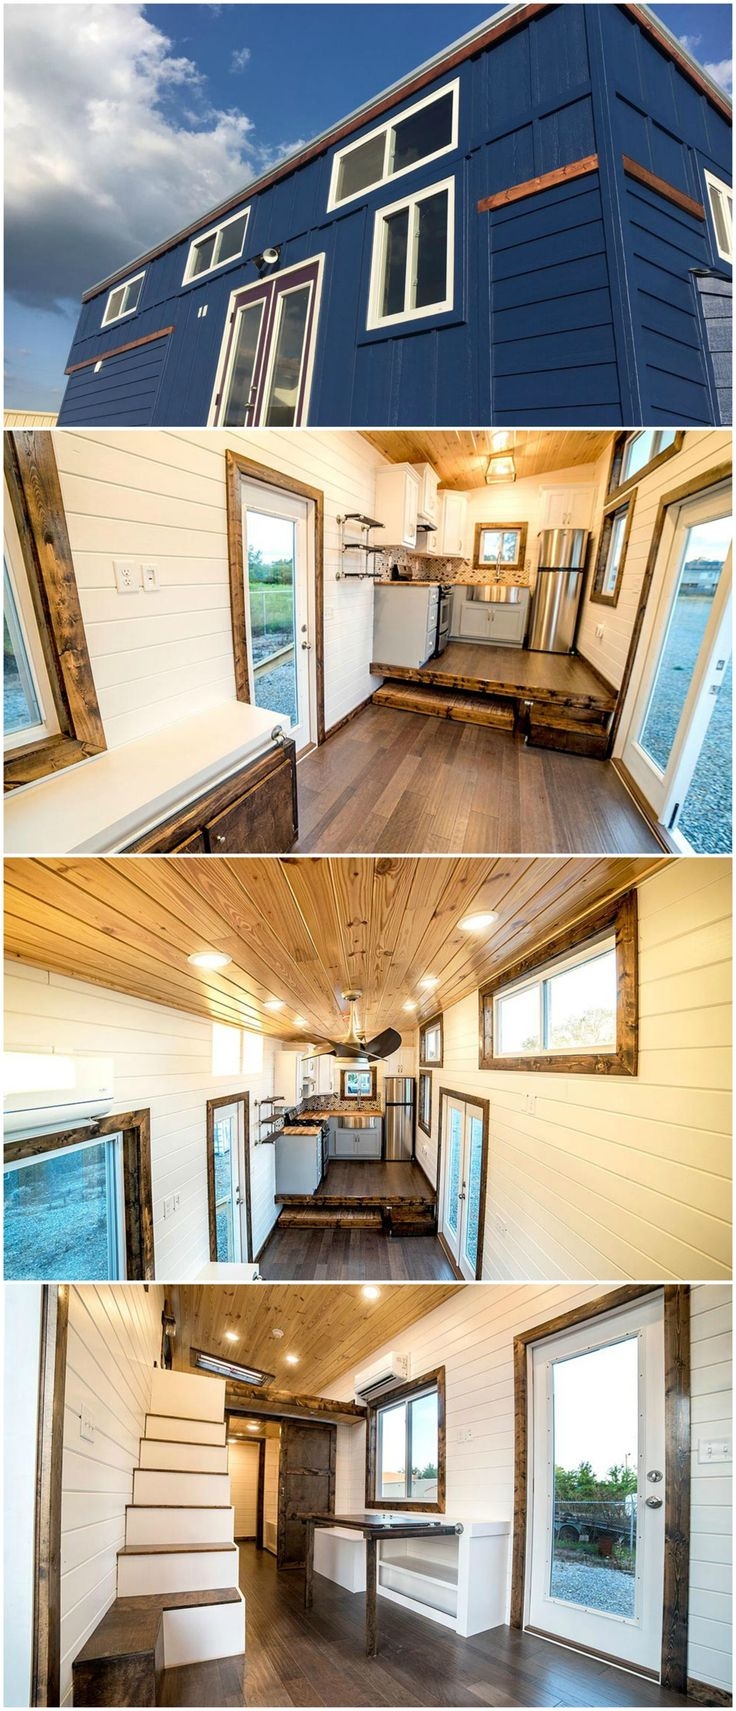 Blue Moon is a gorgeous tiny house designed by Harmony Tiny Homes. The 32′ tiny home features a queen size trundle platform that pulls out from under the elevated kitchen floor. The trundle bed can be pulled out part way to be used as a sofa.  The tiny house consists of dark blue siding, white window frames, and a few stained wood accent pieces. Full light french doors lead into the house and there is a full light rear door as well.